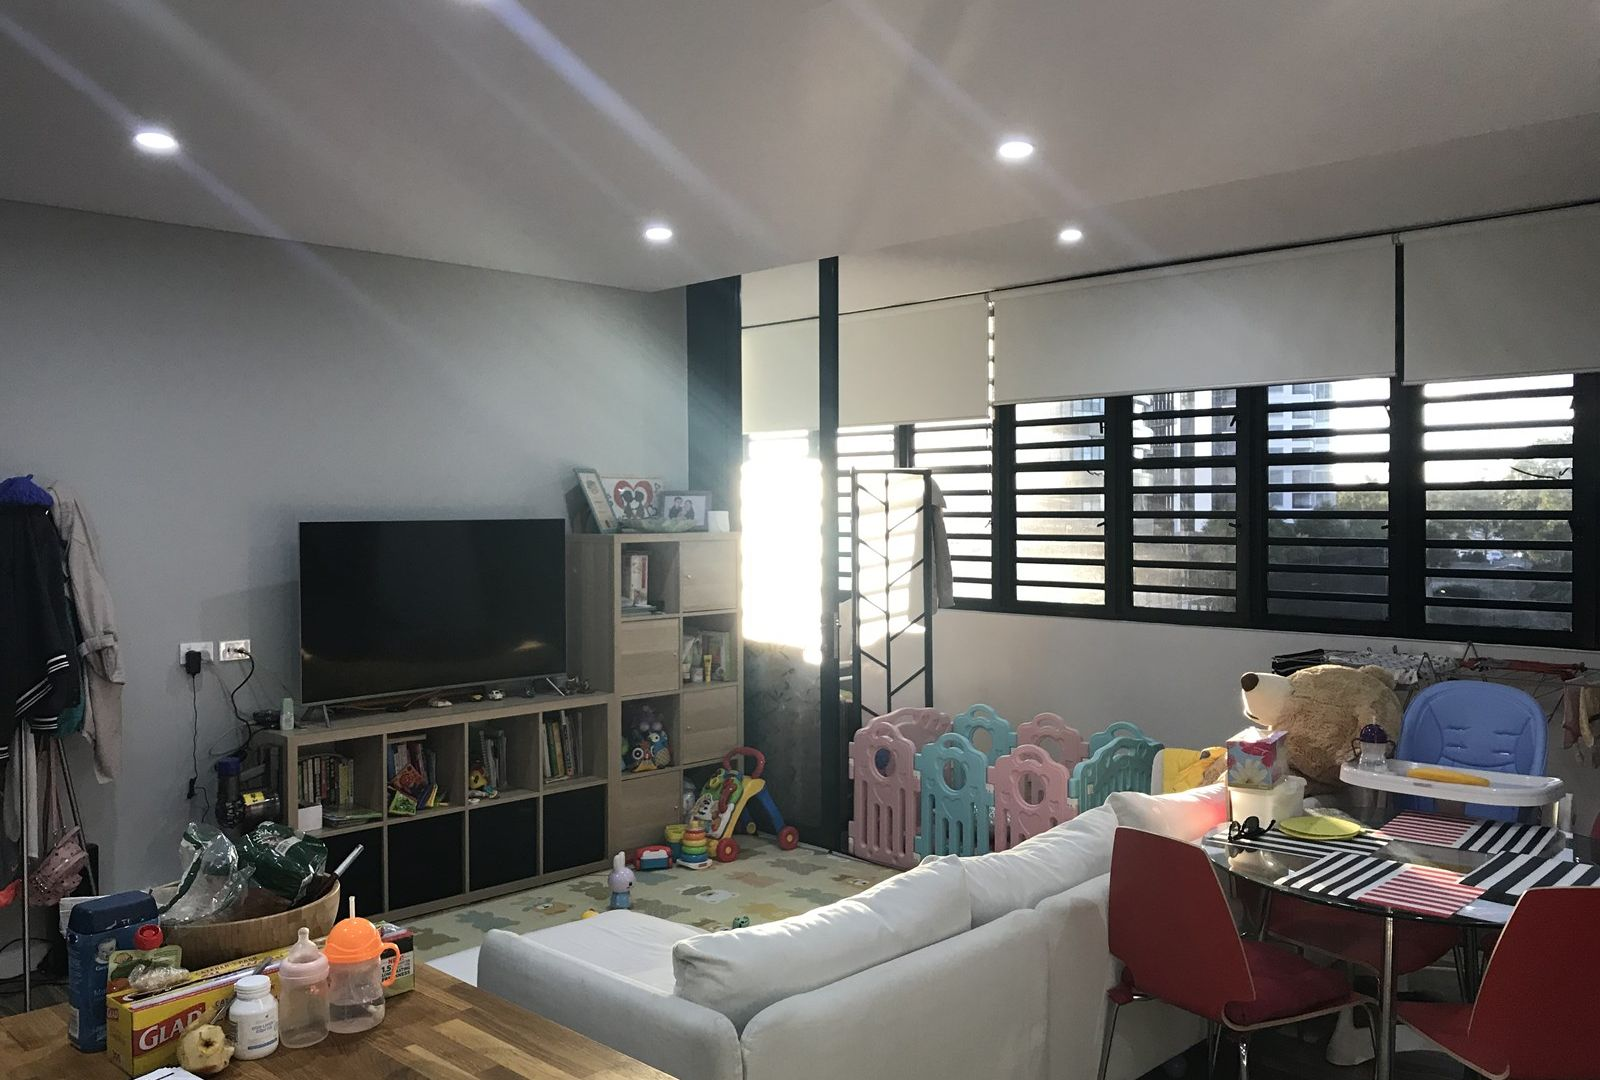 527/2 Betty Cuthbert Ave, Sydney Olympic Park NSW 2127, Image 2